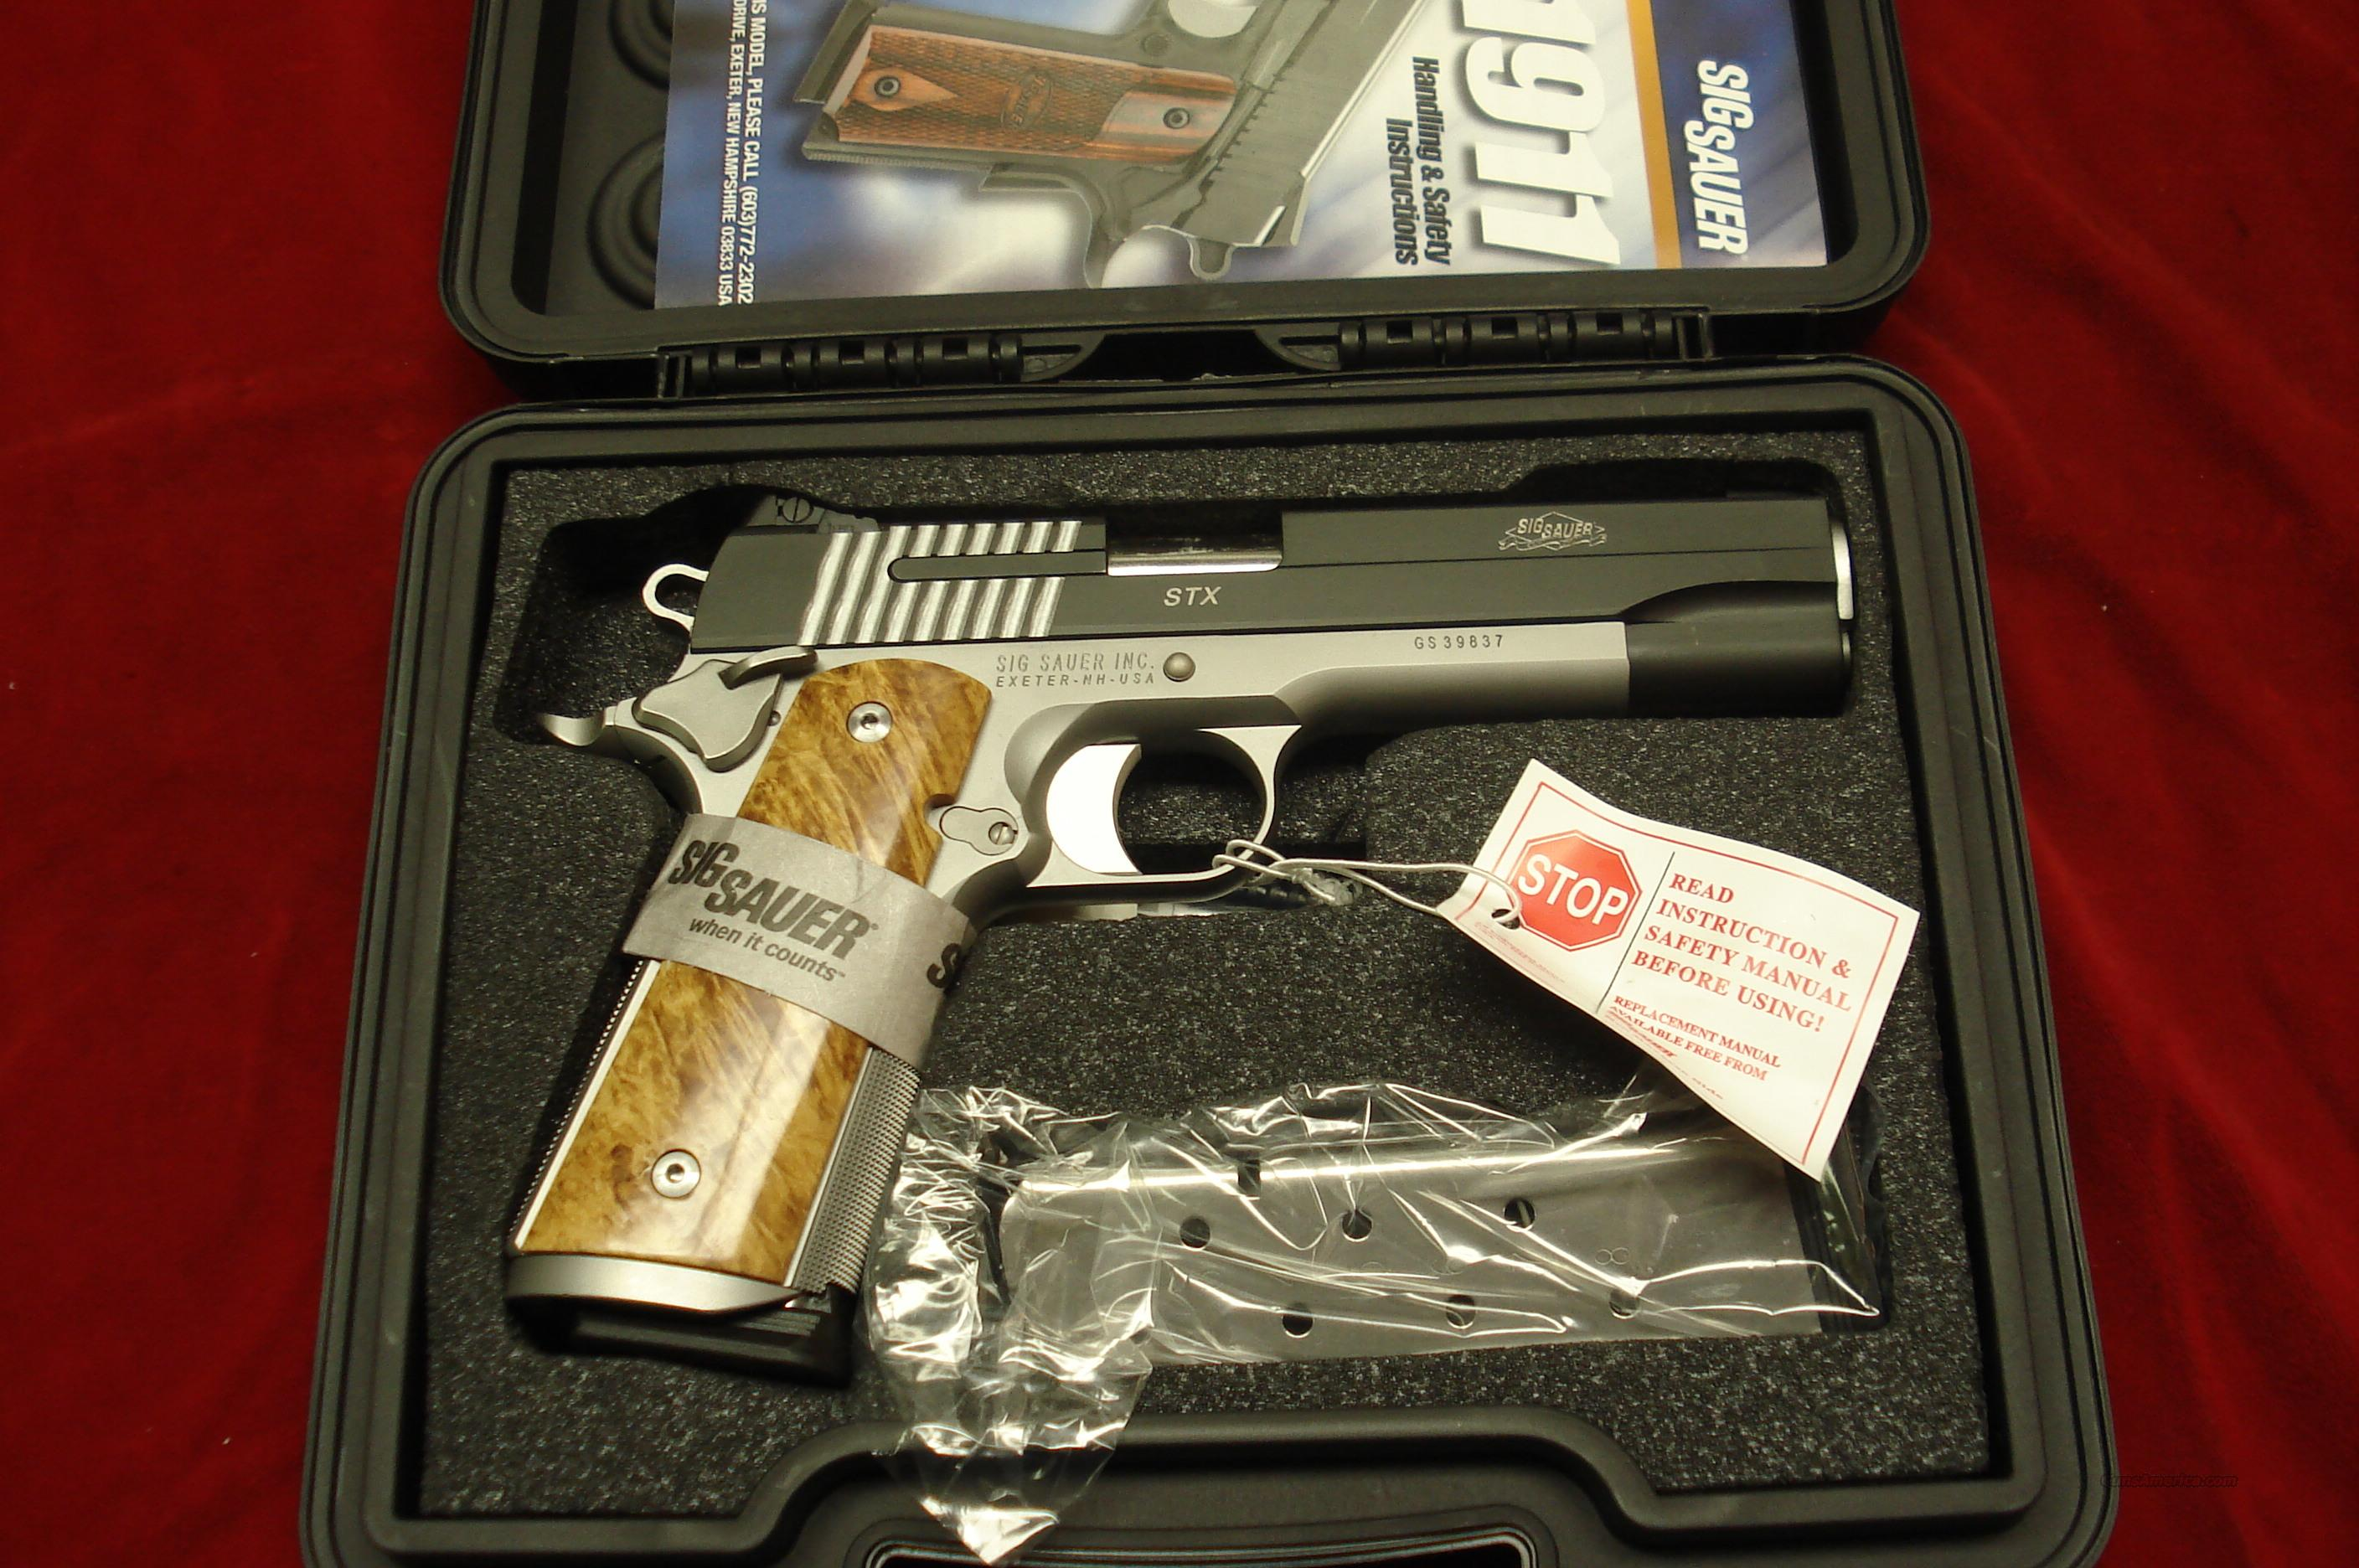 SIG SAUER 1911 STX REVERSE TWO TONE WITH ADJUSTABLE NIGHT SIGHTS NEW   Guns > Pistols > Sig - Sauer/Sigarms Pistols > 1911